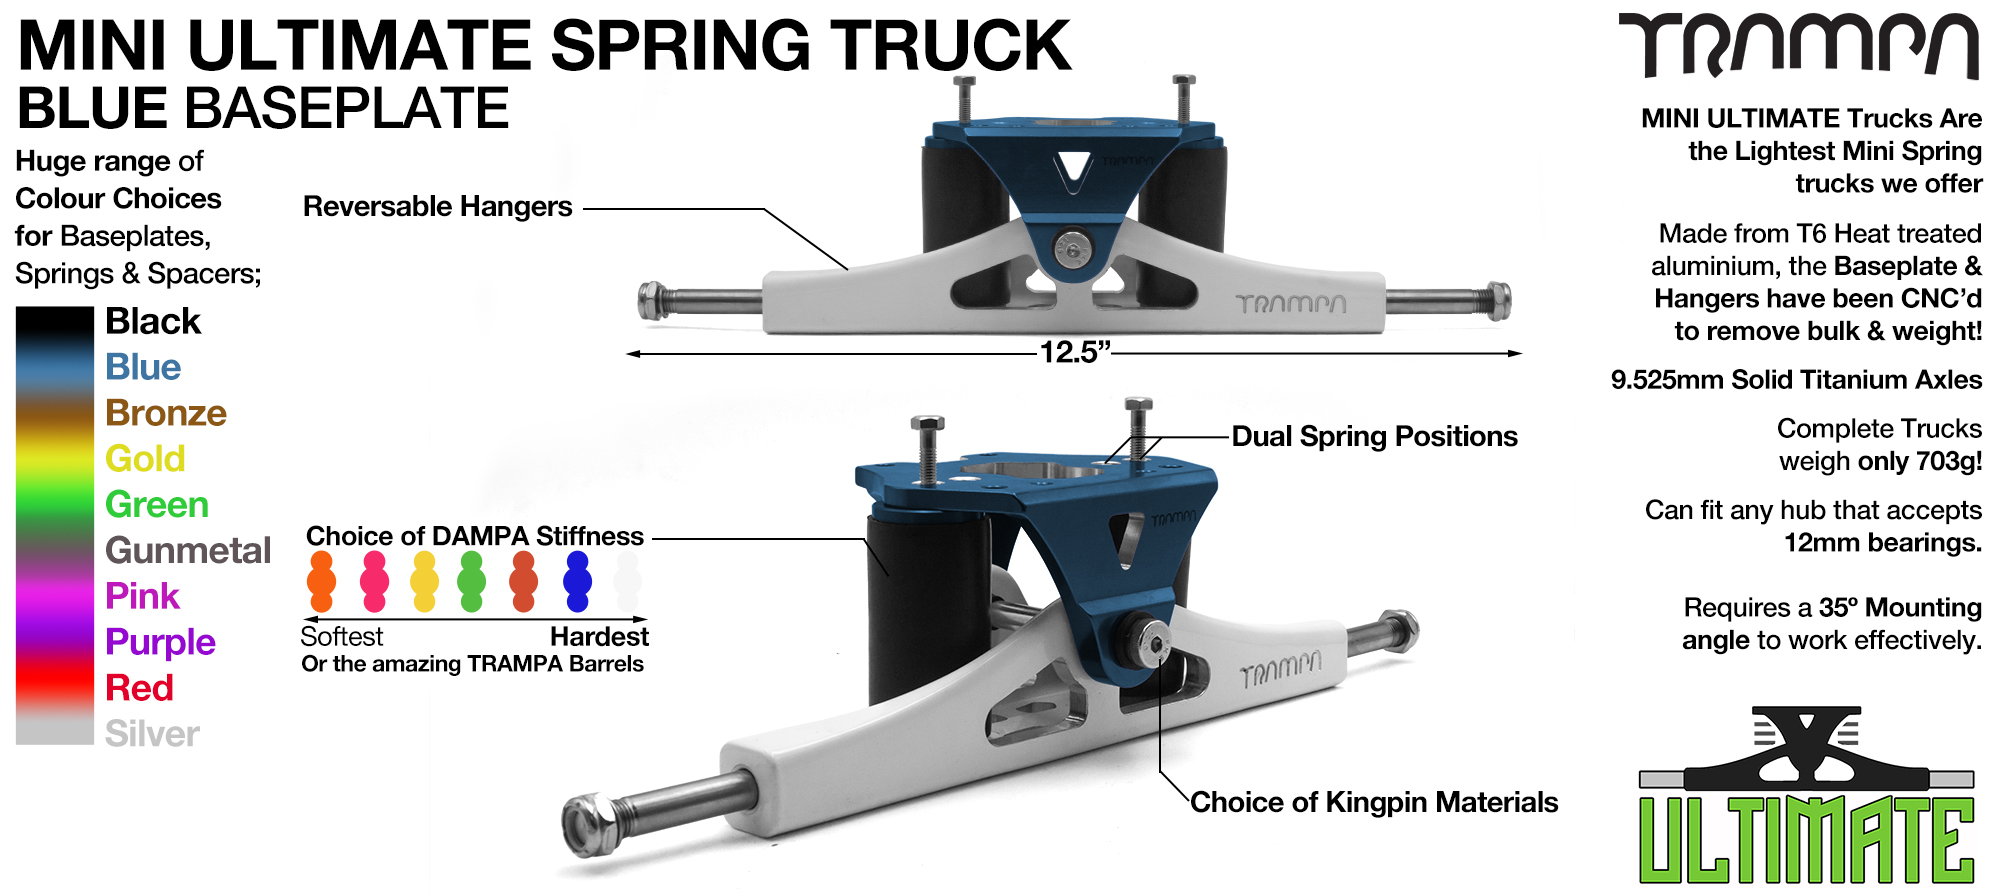 Mini ULTIMATE TRAMPA TRUCKS - CNC FORGED Channel Hanger with 9.525mm TITANIUM Axle CNC Baseplate TITANIUM Kingpin - BLUE